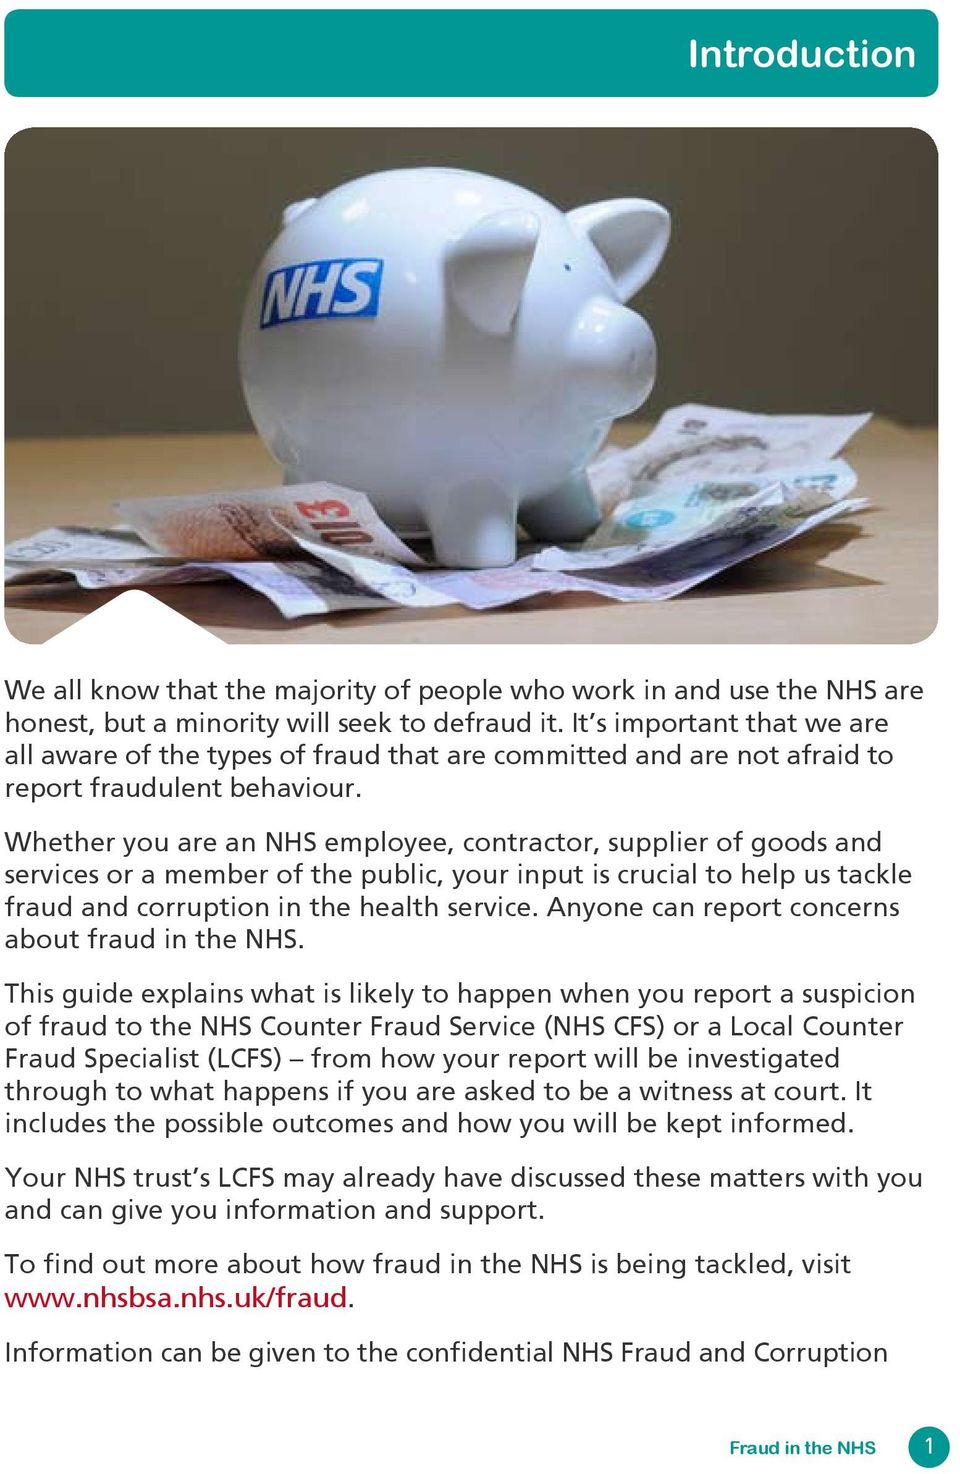 Whether you are an NHS employee, contractor, supplier of goods and services or a member of the public, your input is crucial to help us tackle fraud and corruption in the health service.